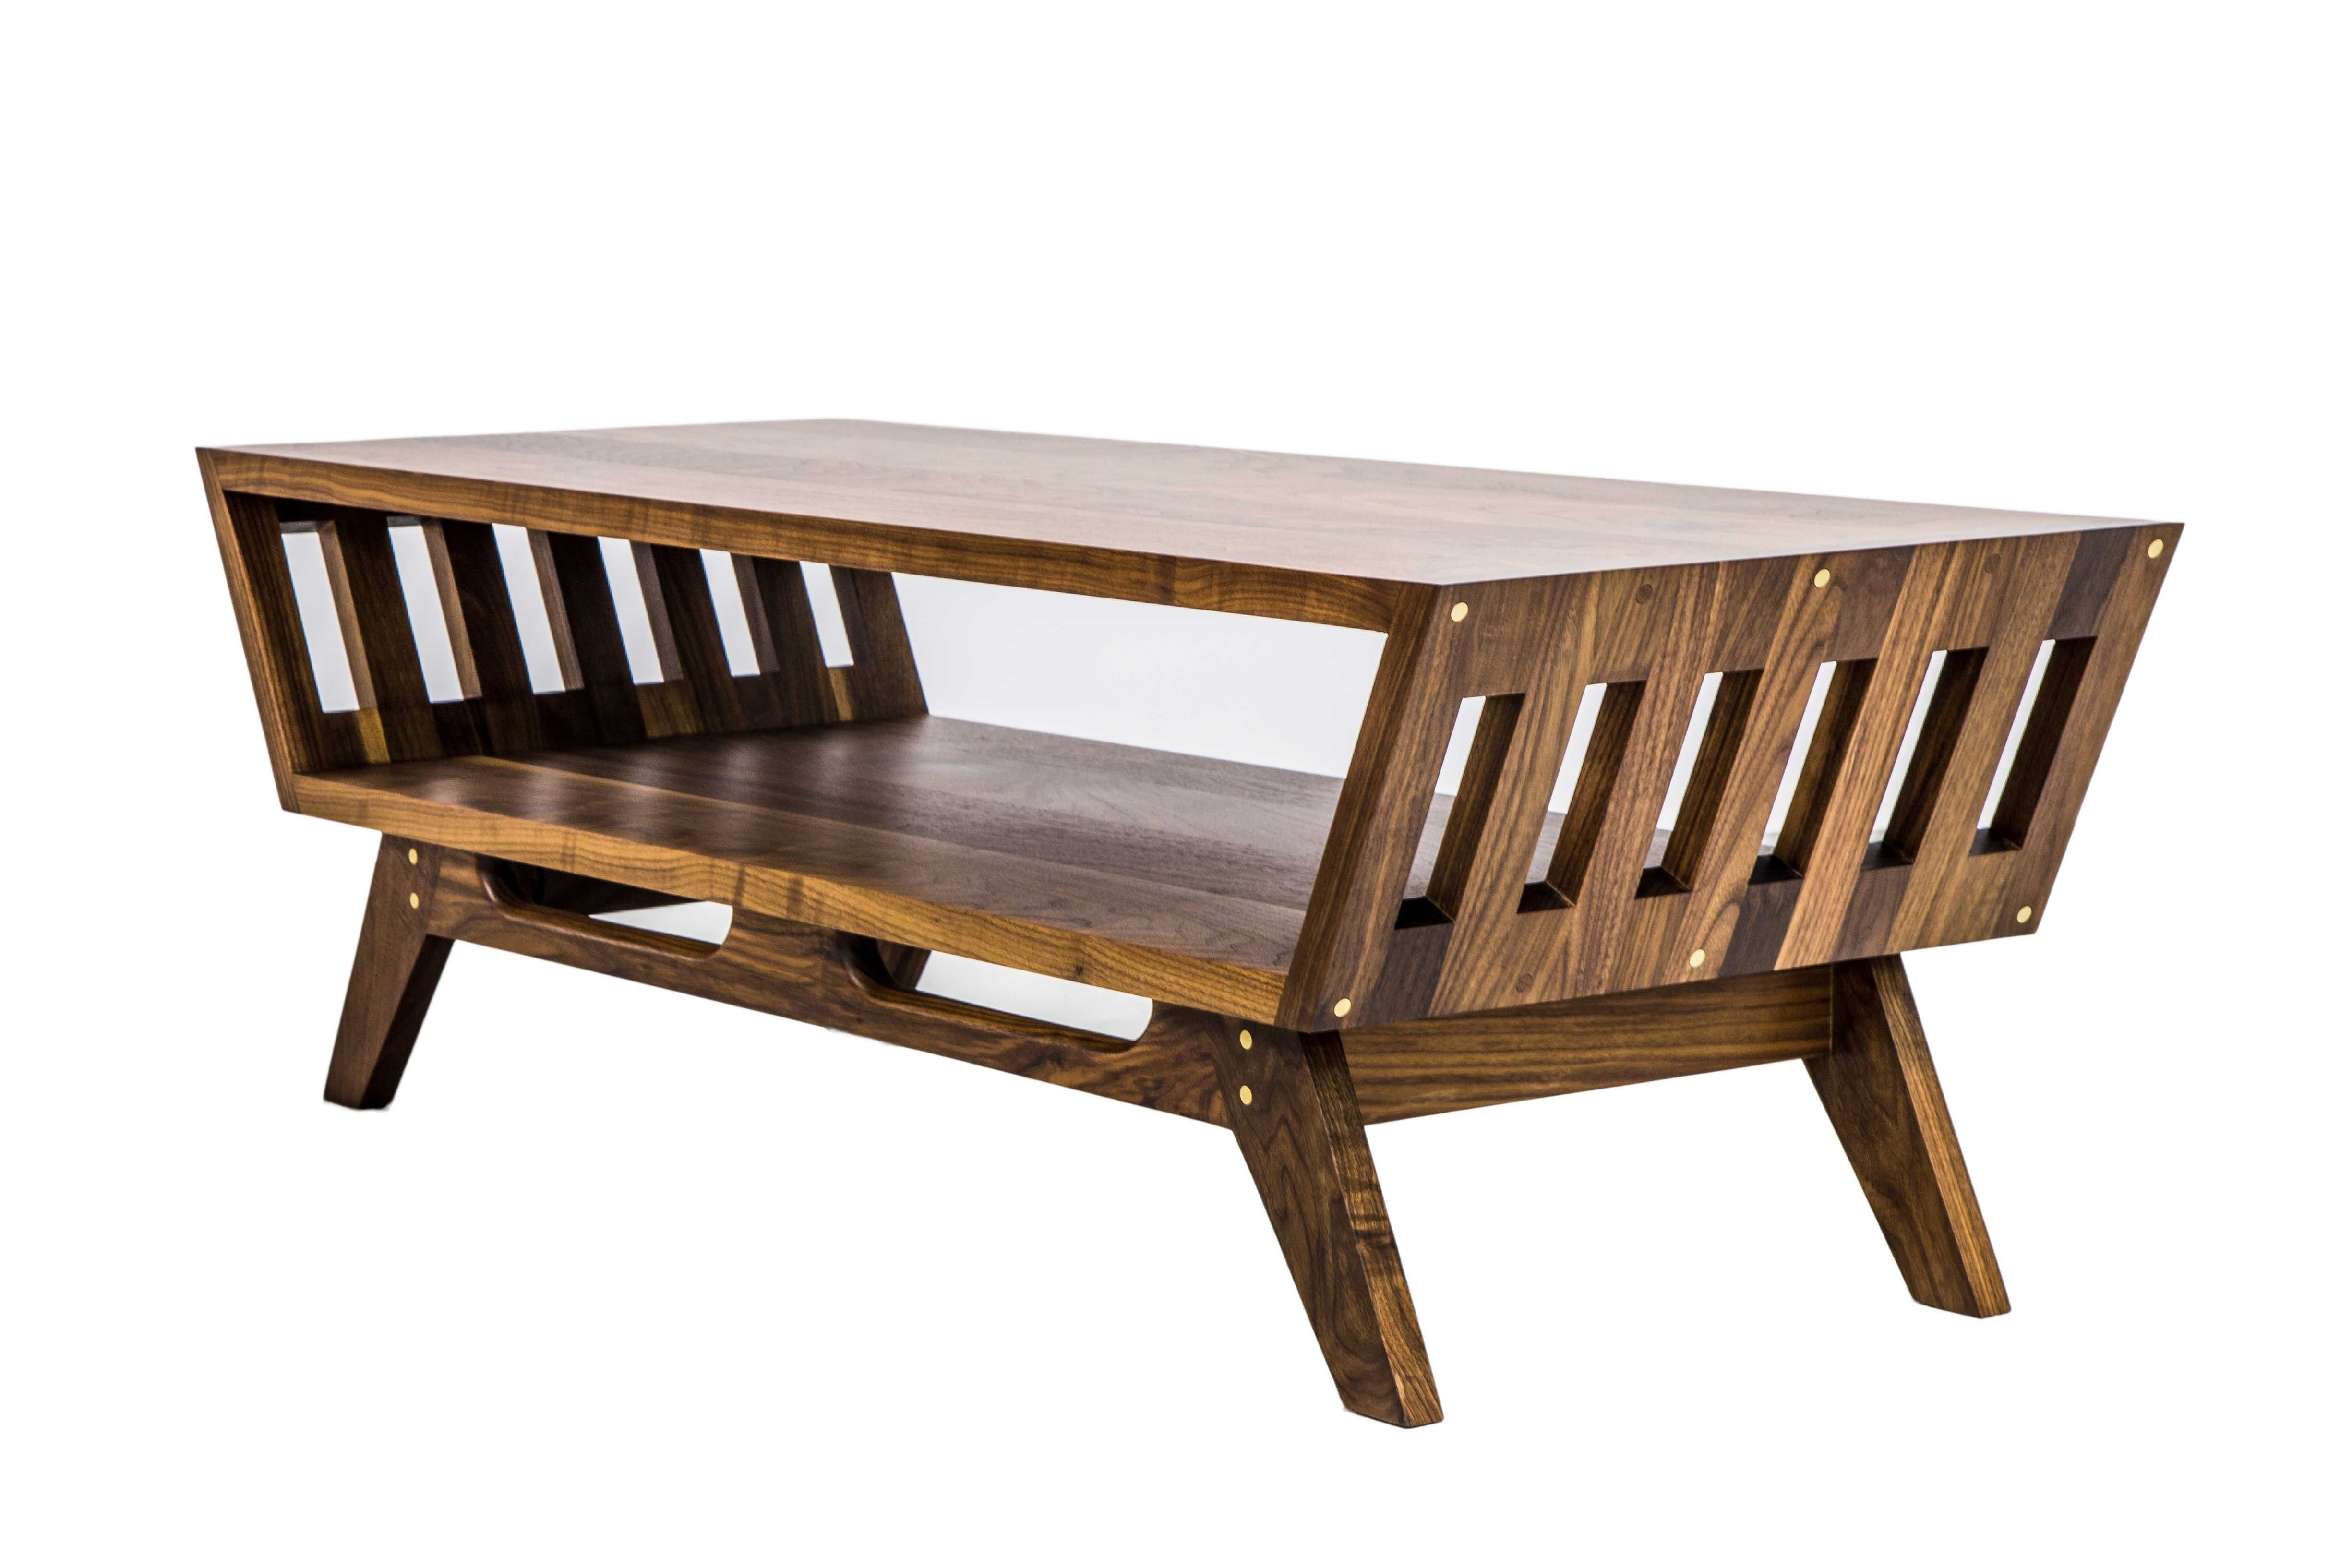 Buy Hand Crafted The April V2 Midcentury Modern Walnut Coffee Table Made To Order From Moderncre8ve Custommade Com